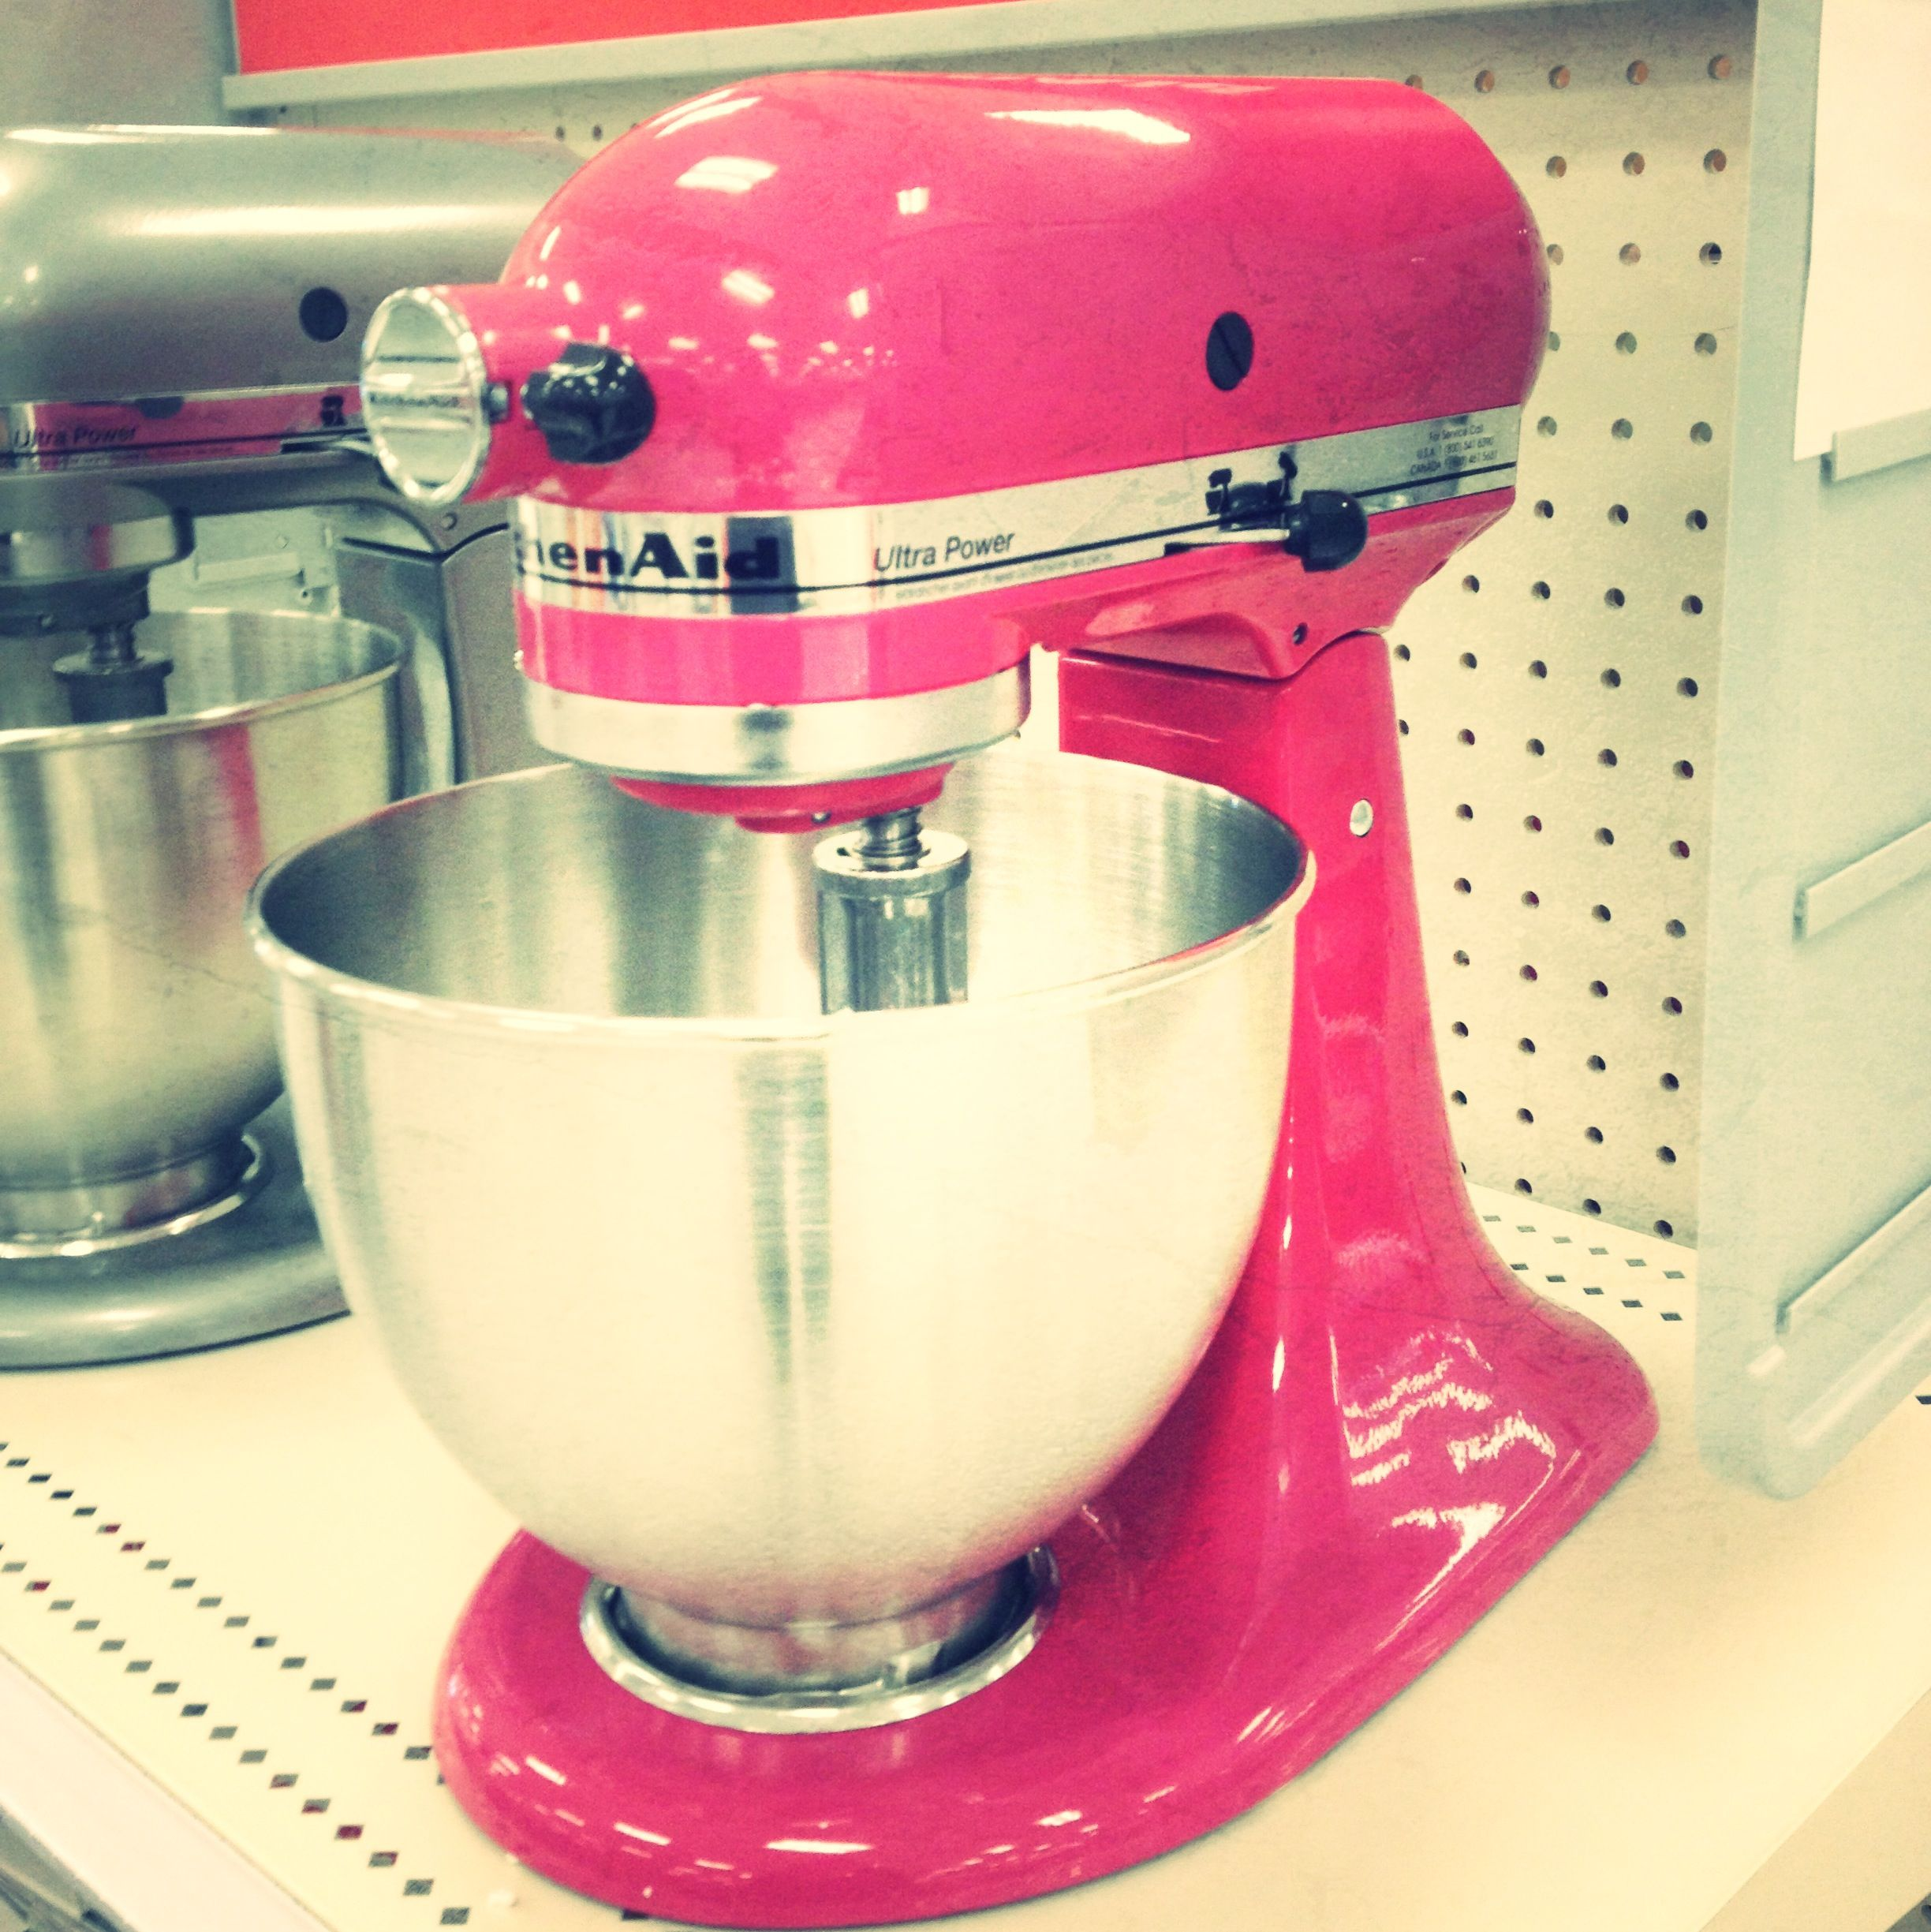 Hot Pink Kitchen Aid Mixer From Target Dining Room Pinterest And Mixers